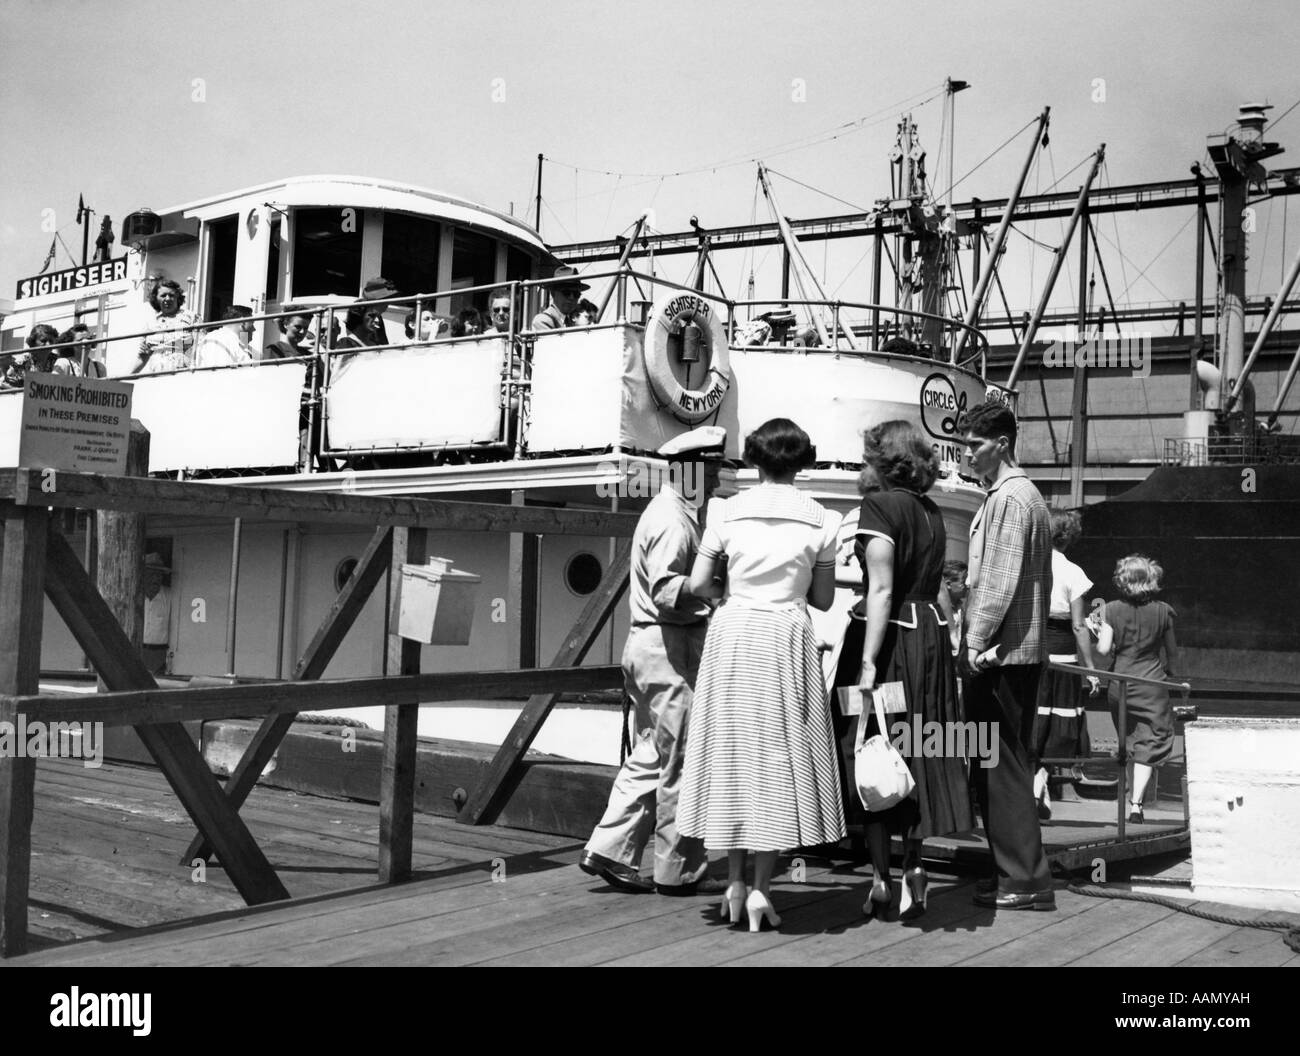 1950s TAKING TICKETS AS TOURIST GO ABOARD CIRCLE LINE BOAT SIGHTSEEING TRIP CRUISE AROUND MANHATTAN ISLAND NEW YORK - Stock Image